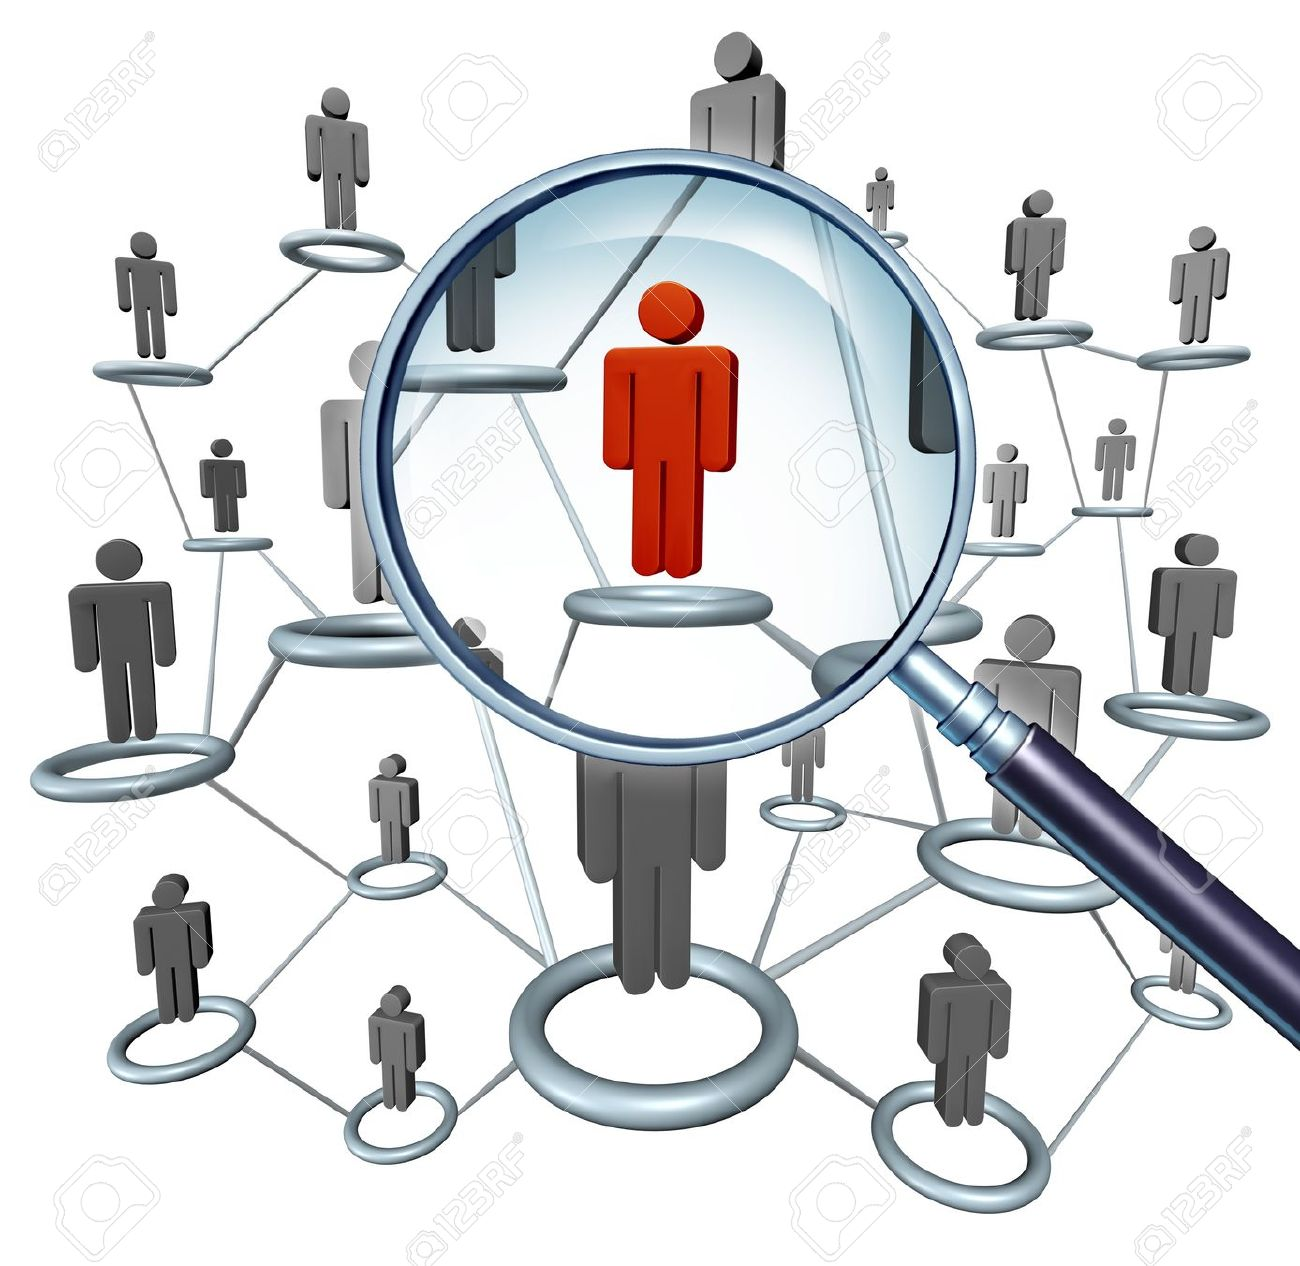 finding employment stock photos pictures 9 360 royalty finding employment job searching and career hiring choice employment concept human icons connected in